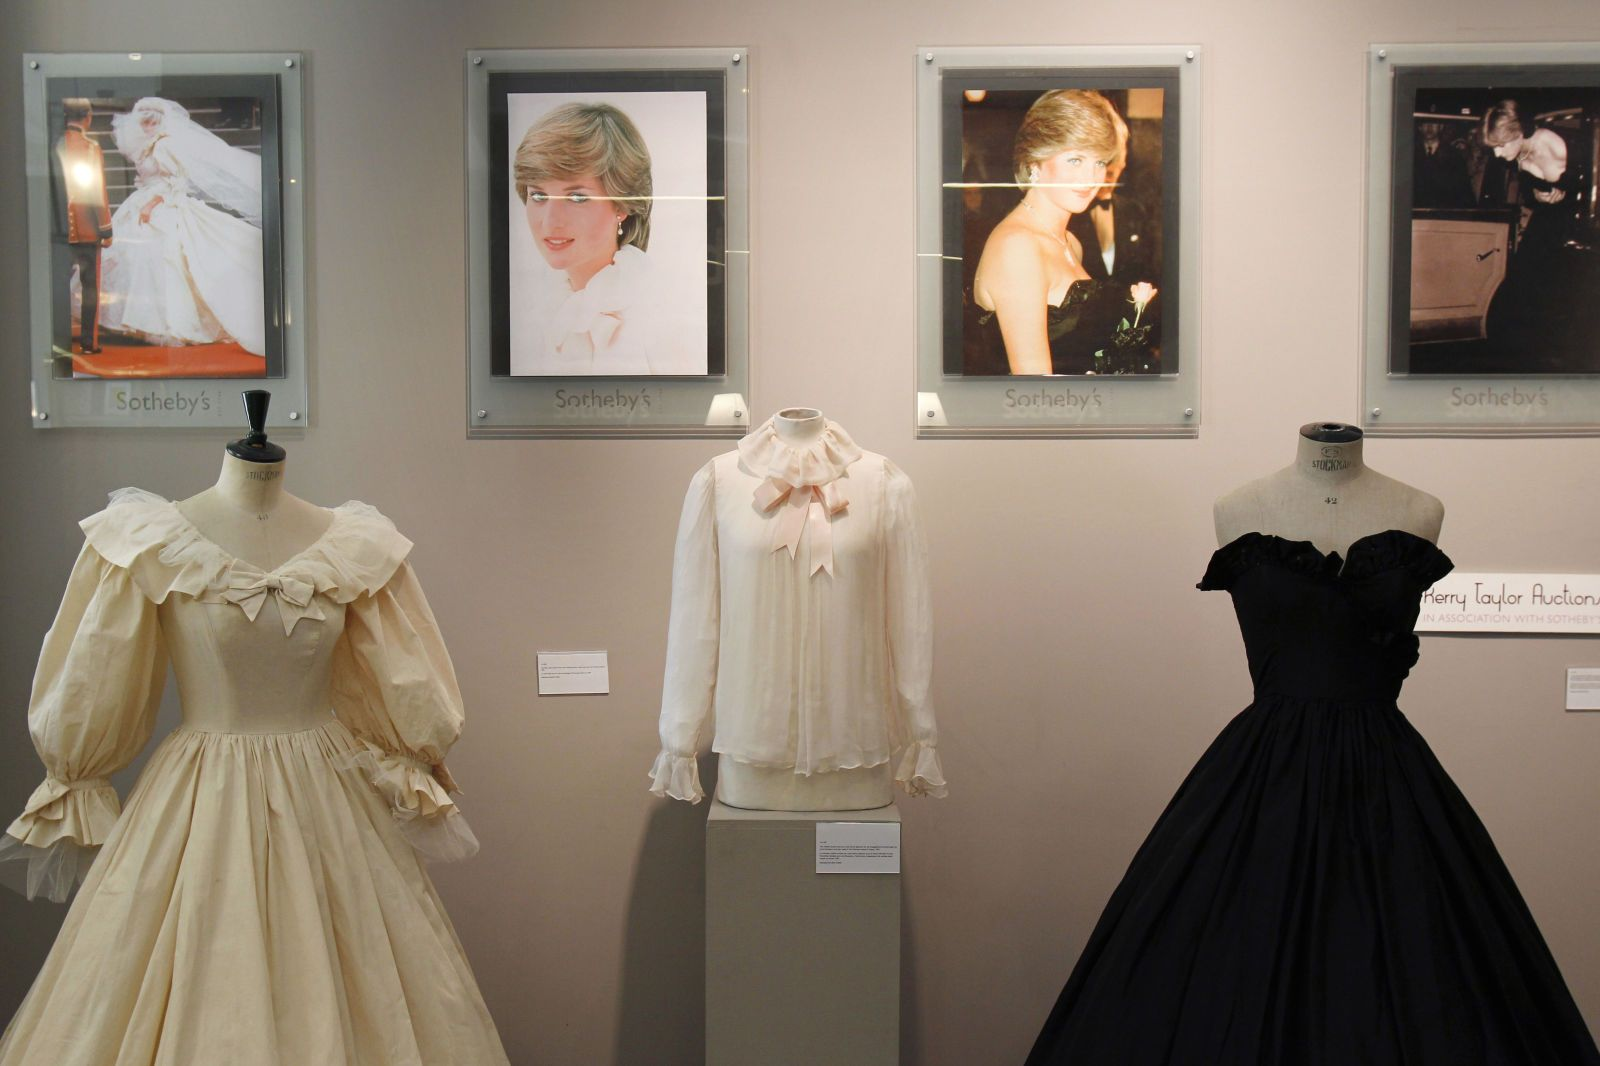 Princess Diana S Iconic Wardrobe Will Be Put On Display In A New Exhibit Princess Diana Dresses Princess Diana